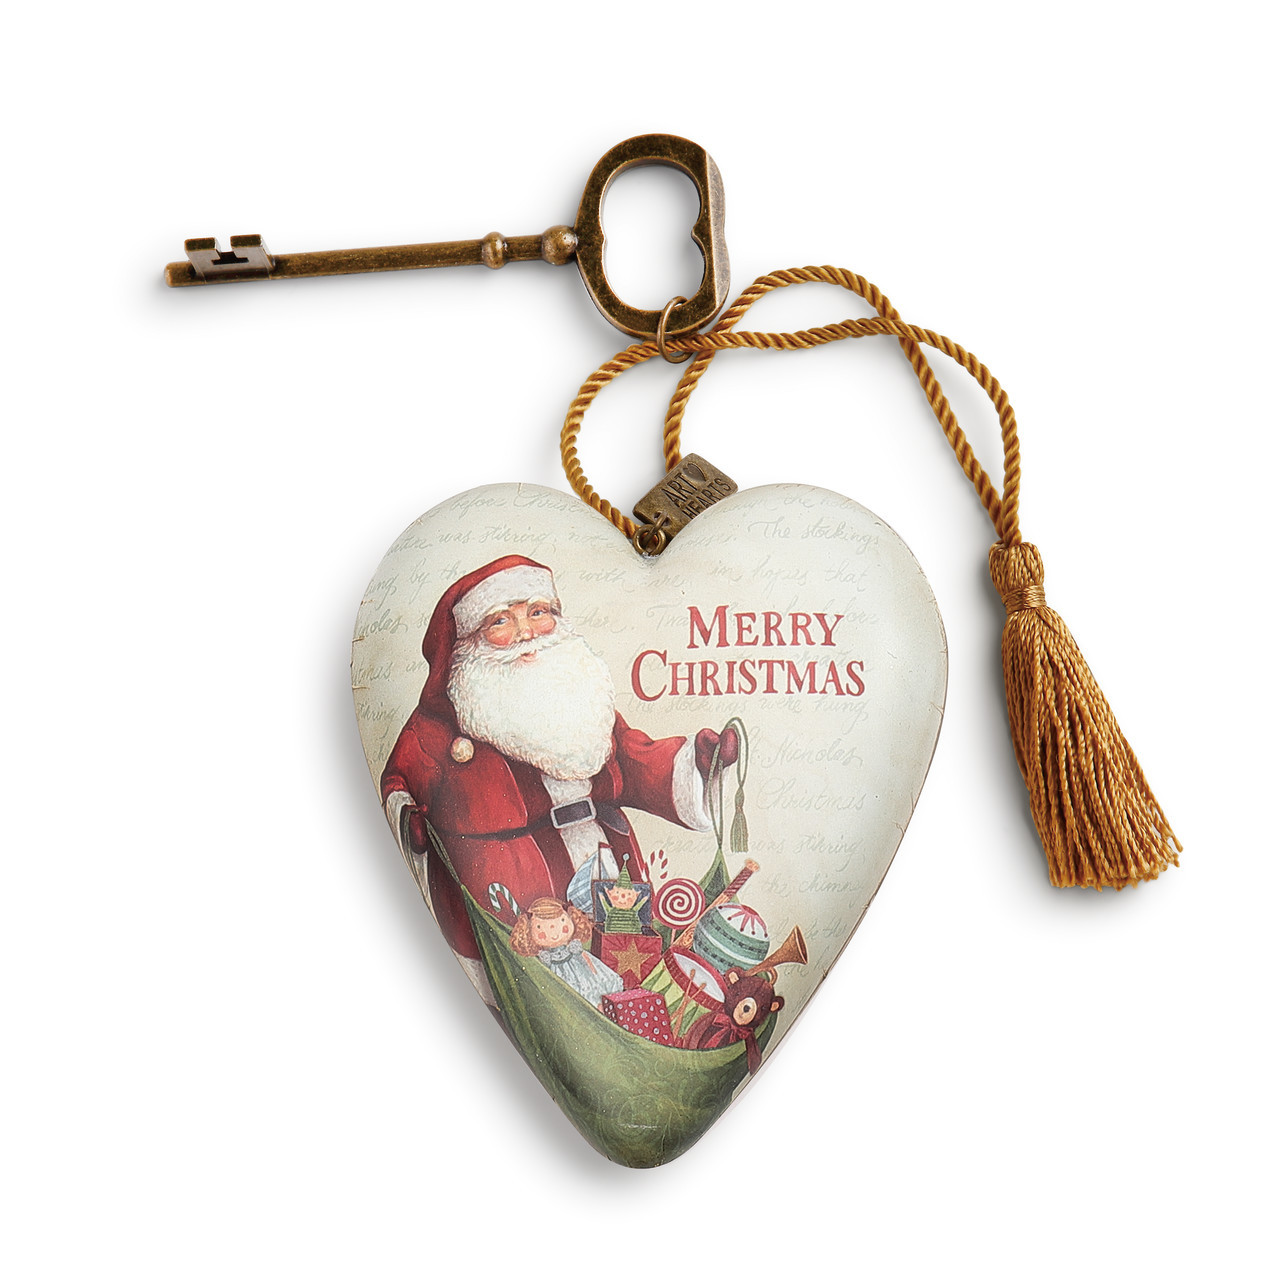 Merry Christmas Art Heart